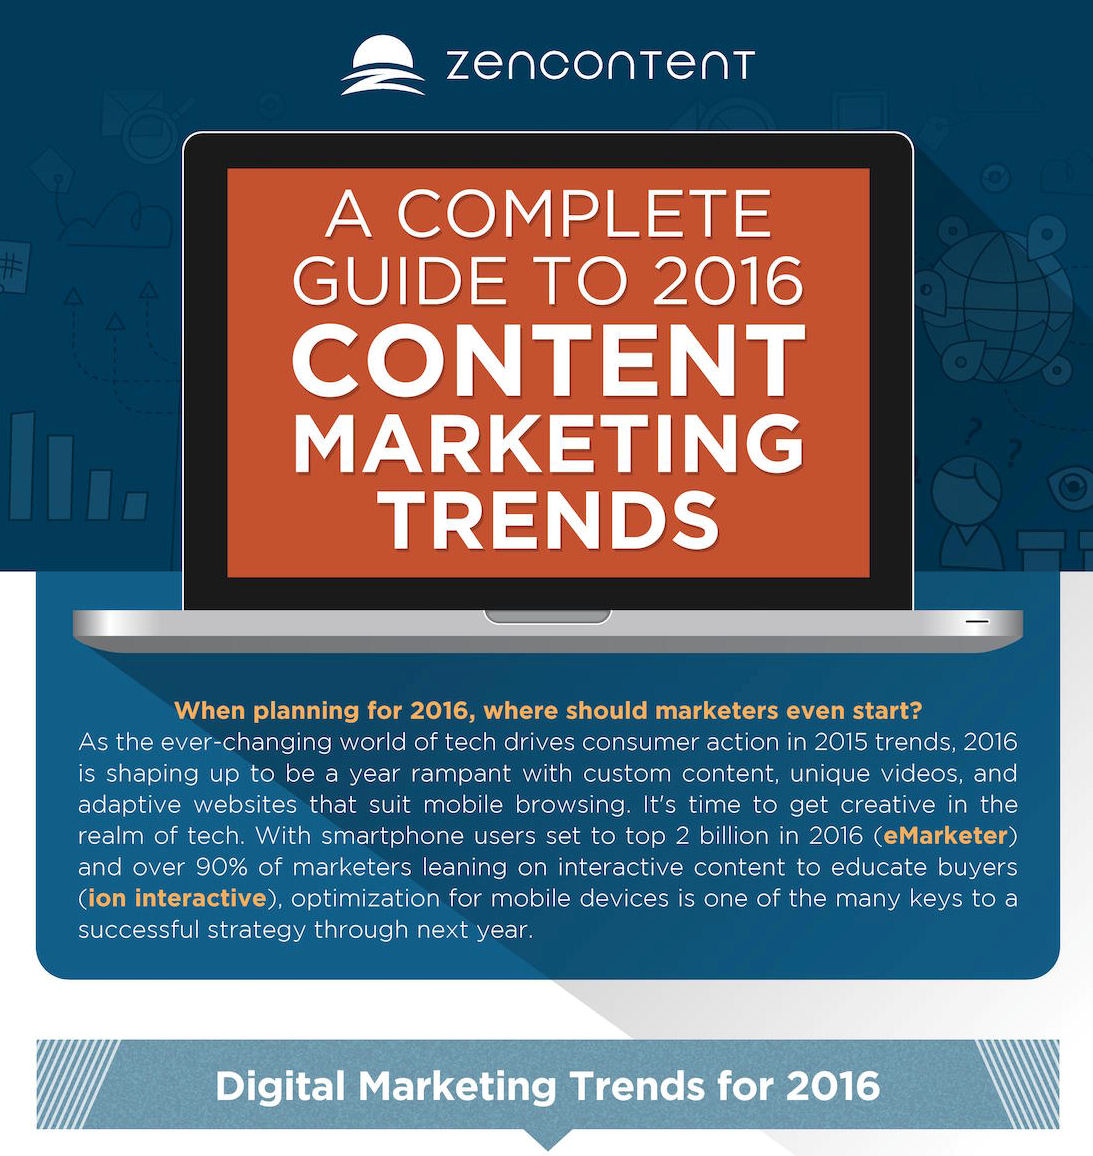 Complete-Guide-to-2016-Content-Marketing-Trends-part-1